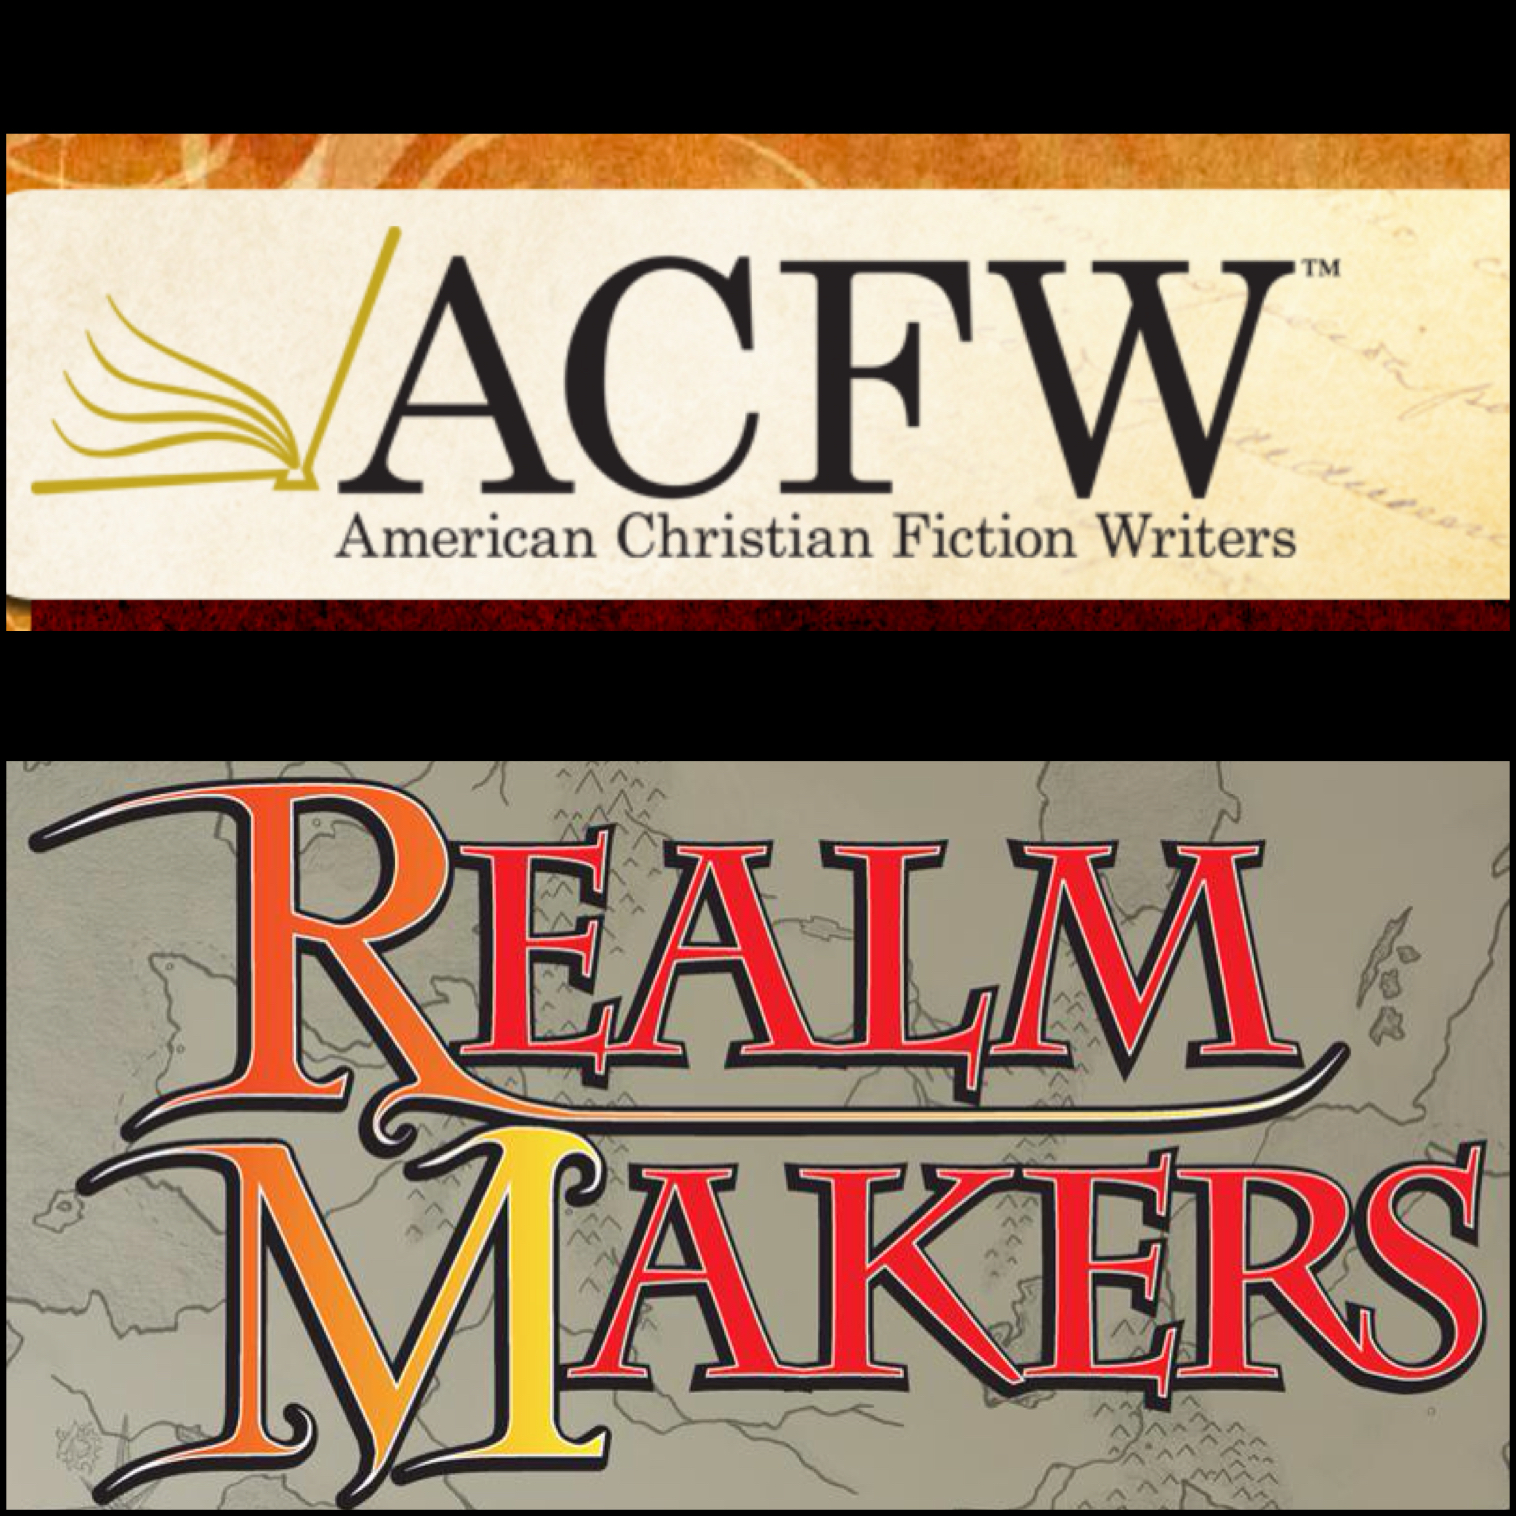 ACFW vs Realm Makers